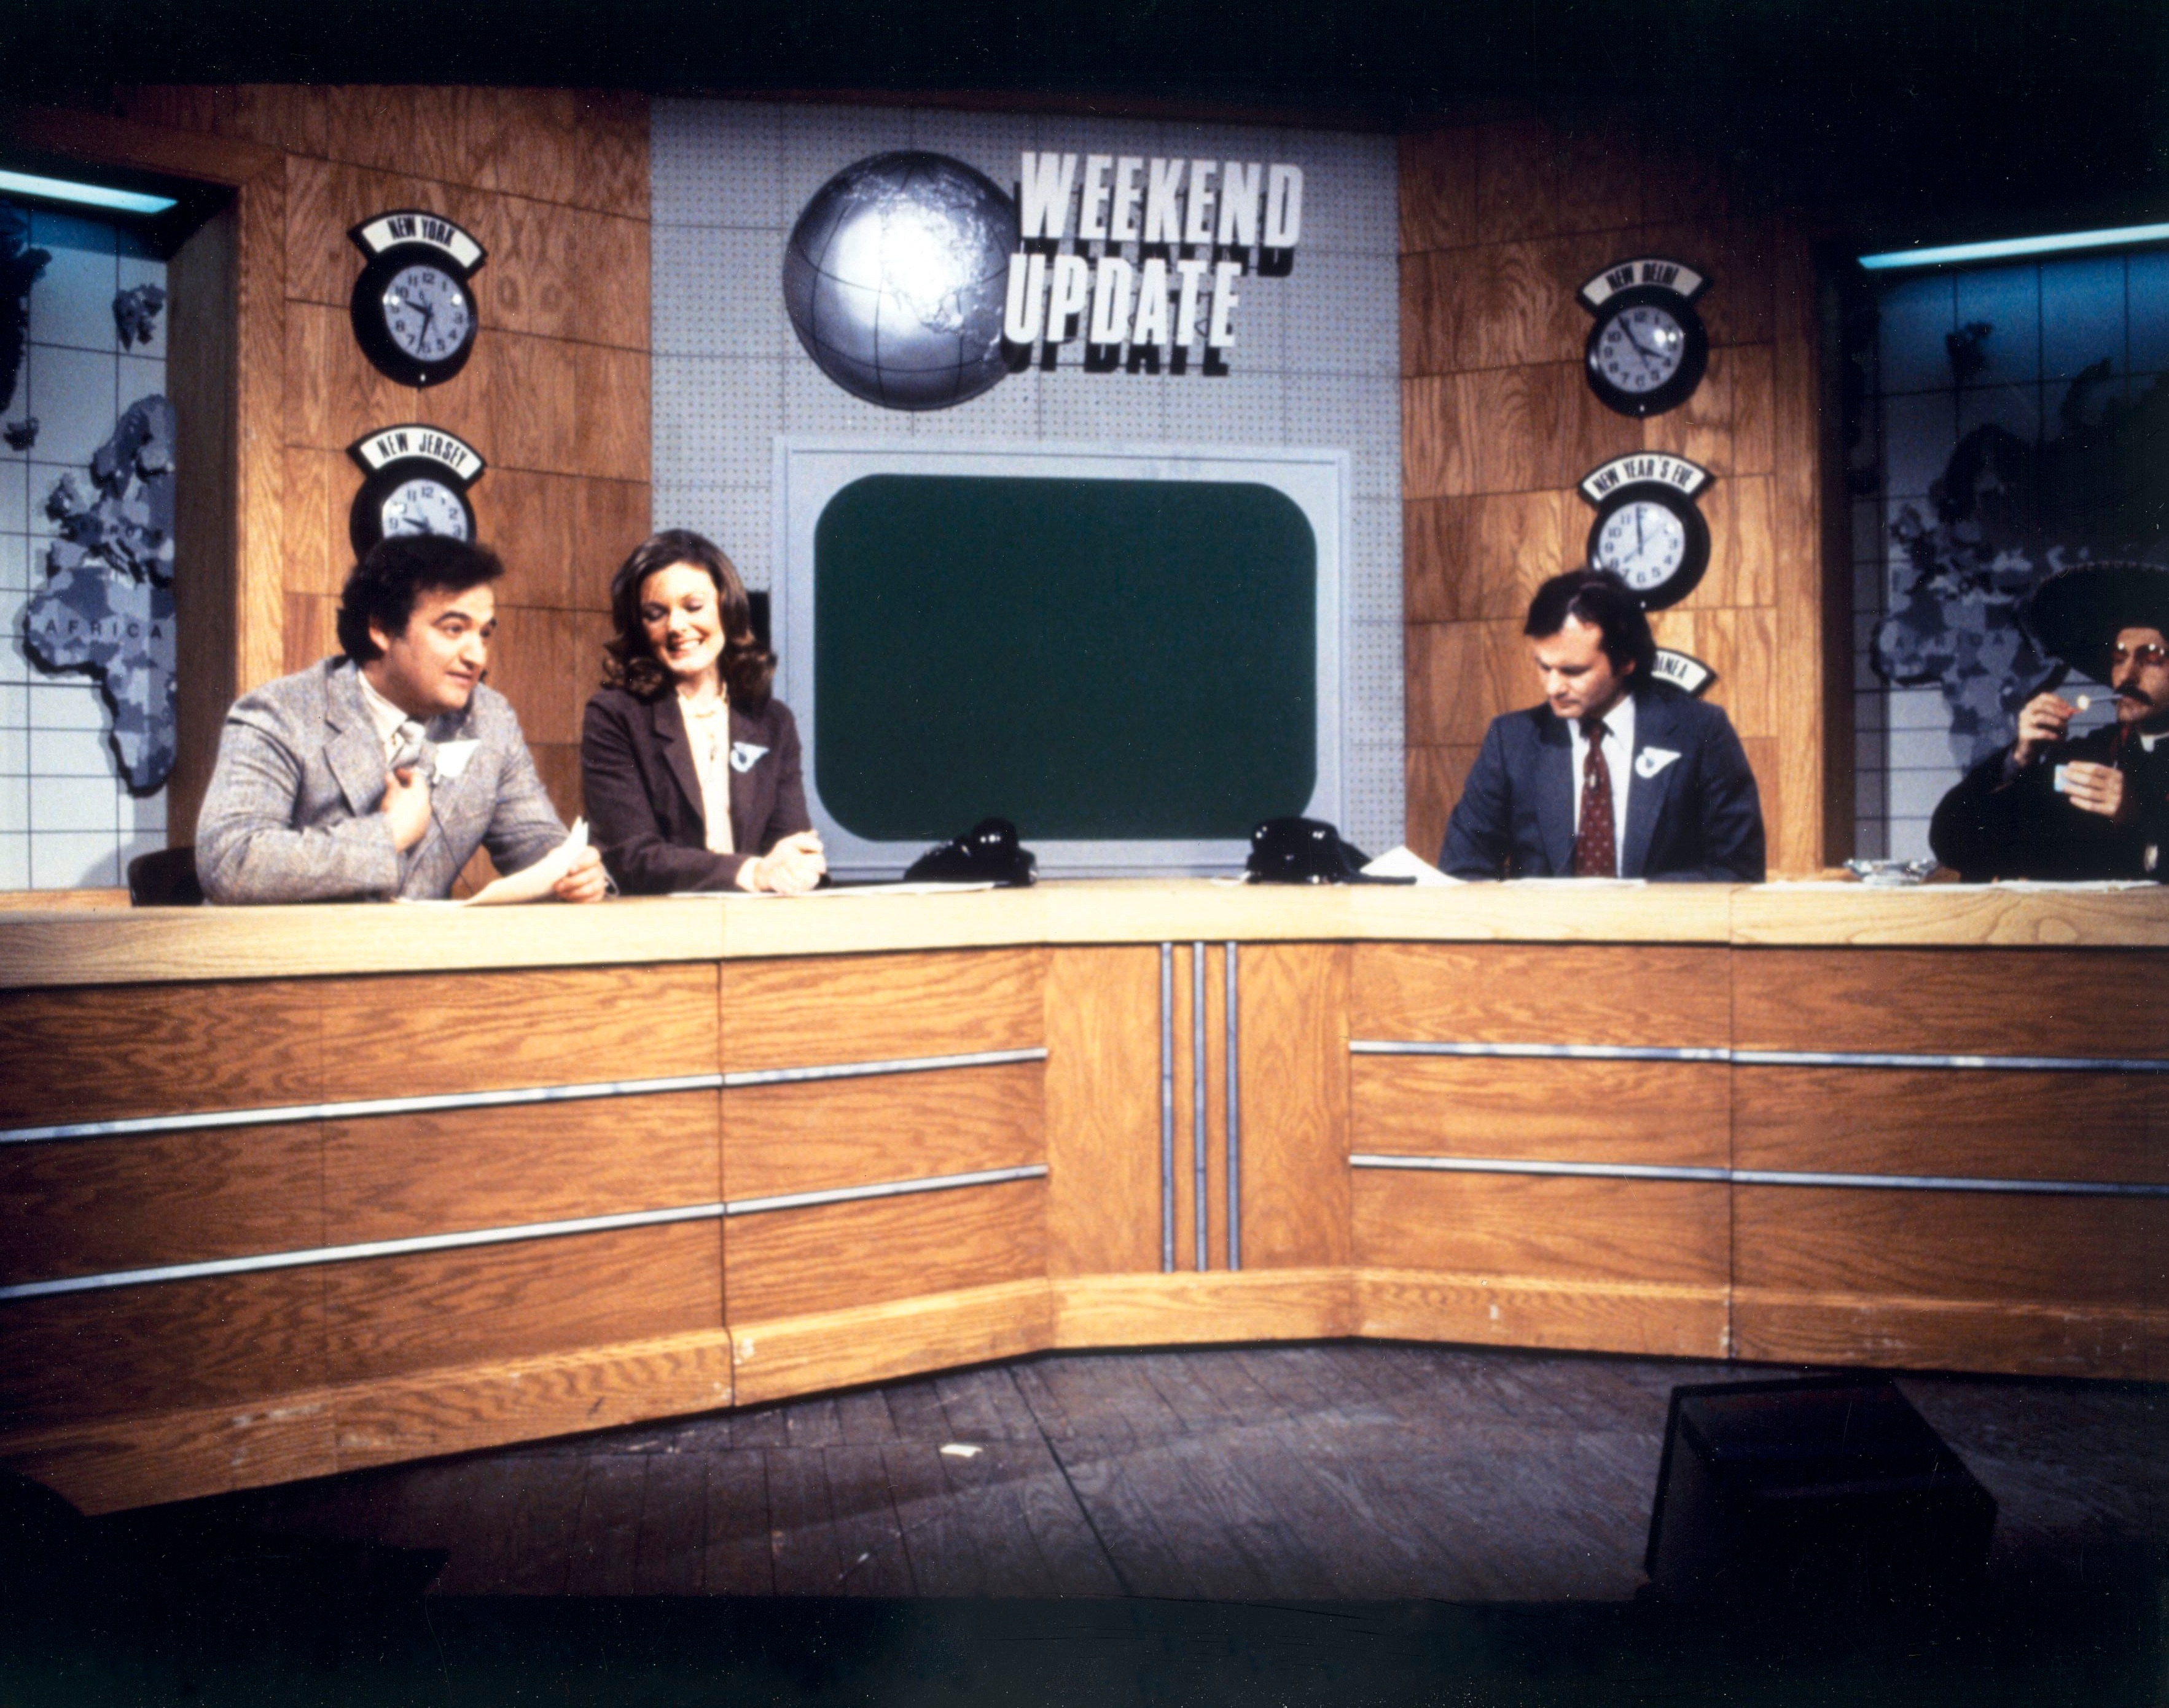 1565334198395_Saturday_Night_Live.jpg - Nello show televisivo Saturday Night Live